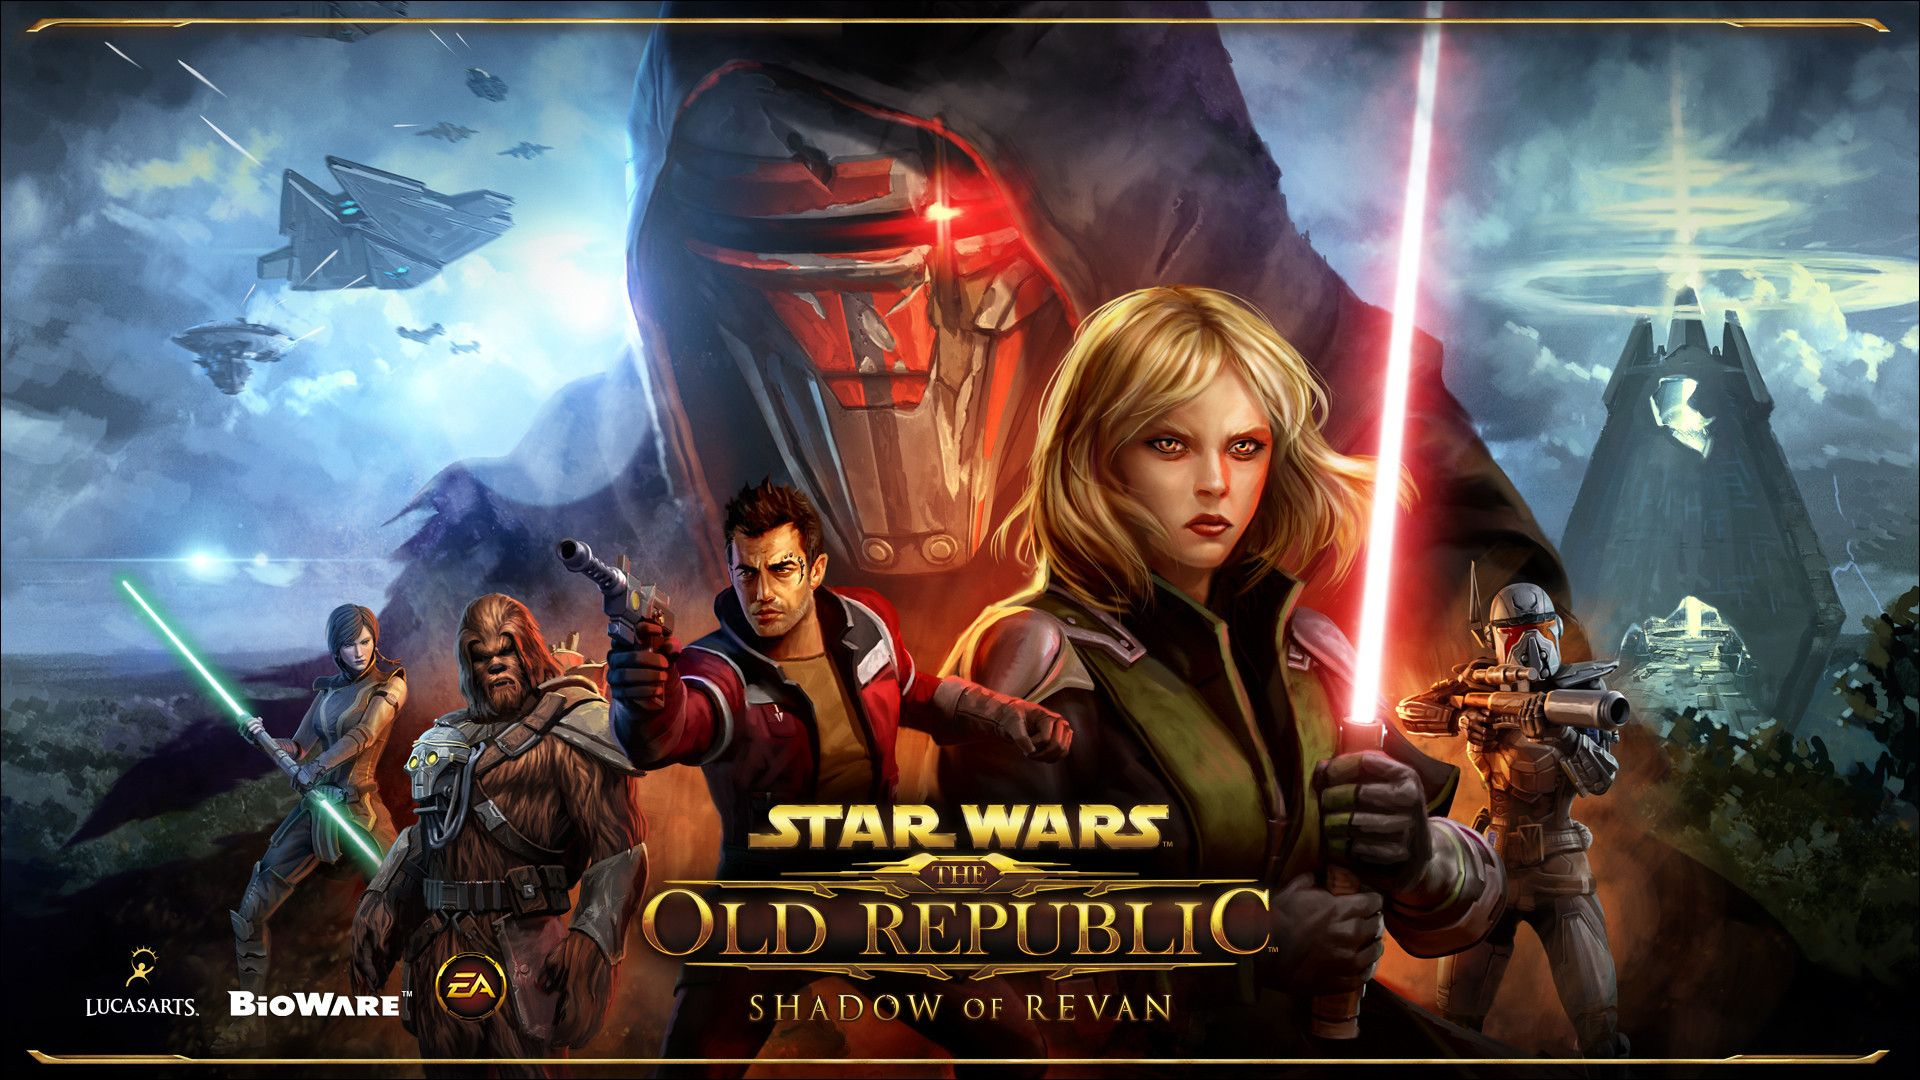 Star Wars Old Republic Wallpapers Top Free Star Wars Old Republic Backgrounds Wallpaperaccess